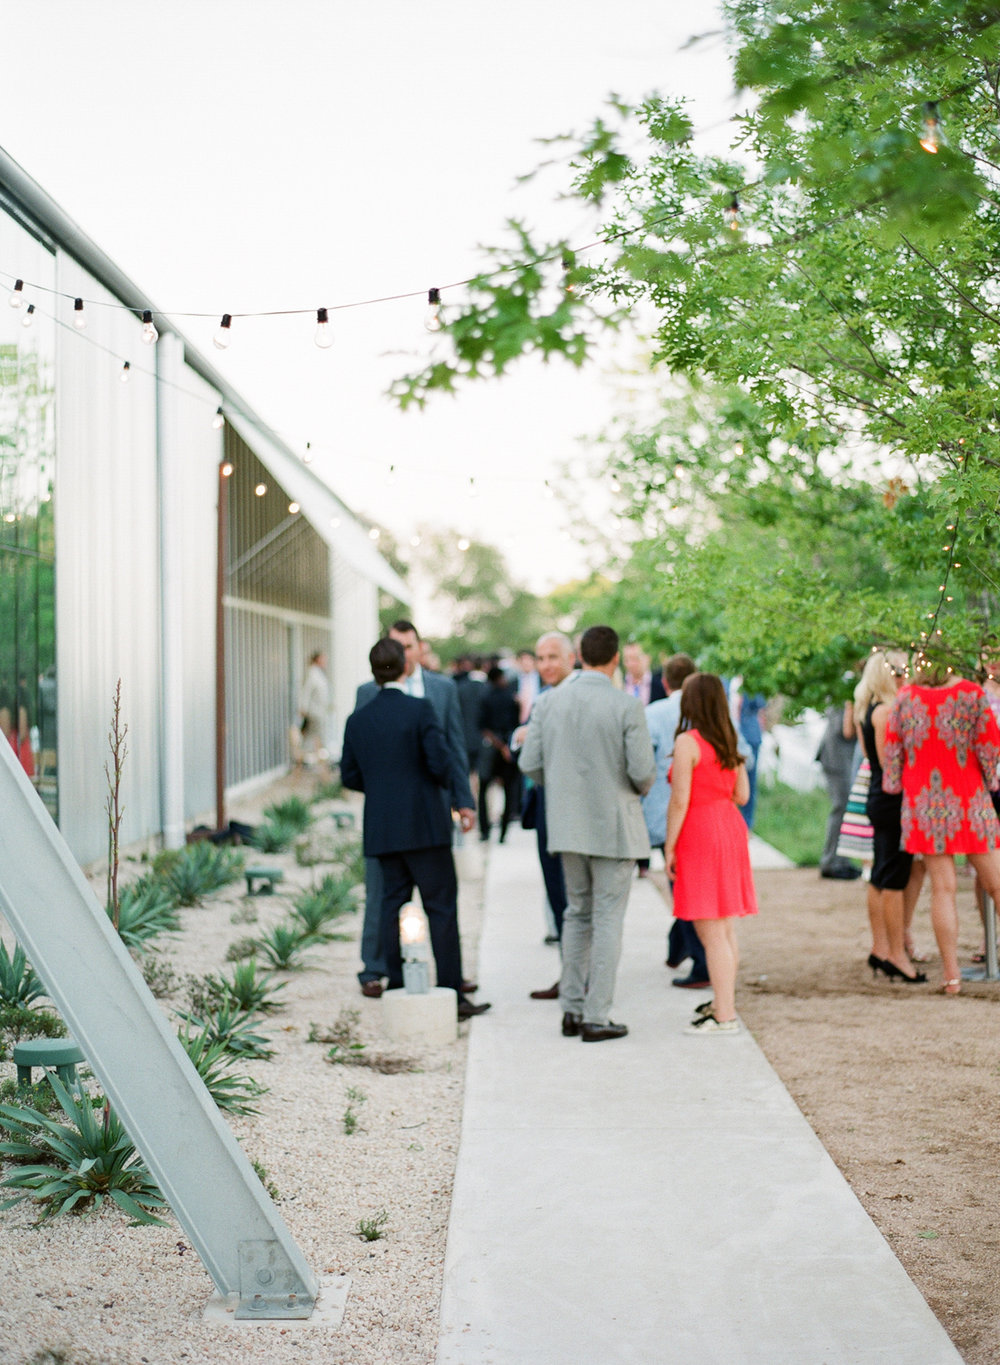 PROSPECT_HOUSE_WEDDING_AUSTIN_TX_BY_MATTHEW_MOORE_PHOTOGRAPHY_00563.jpg